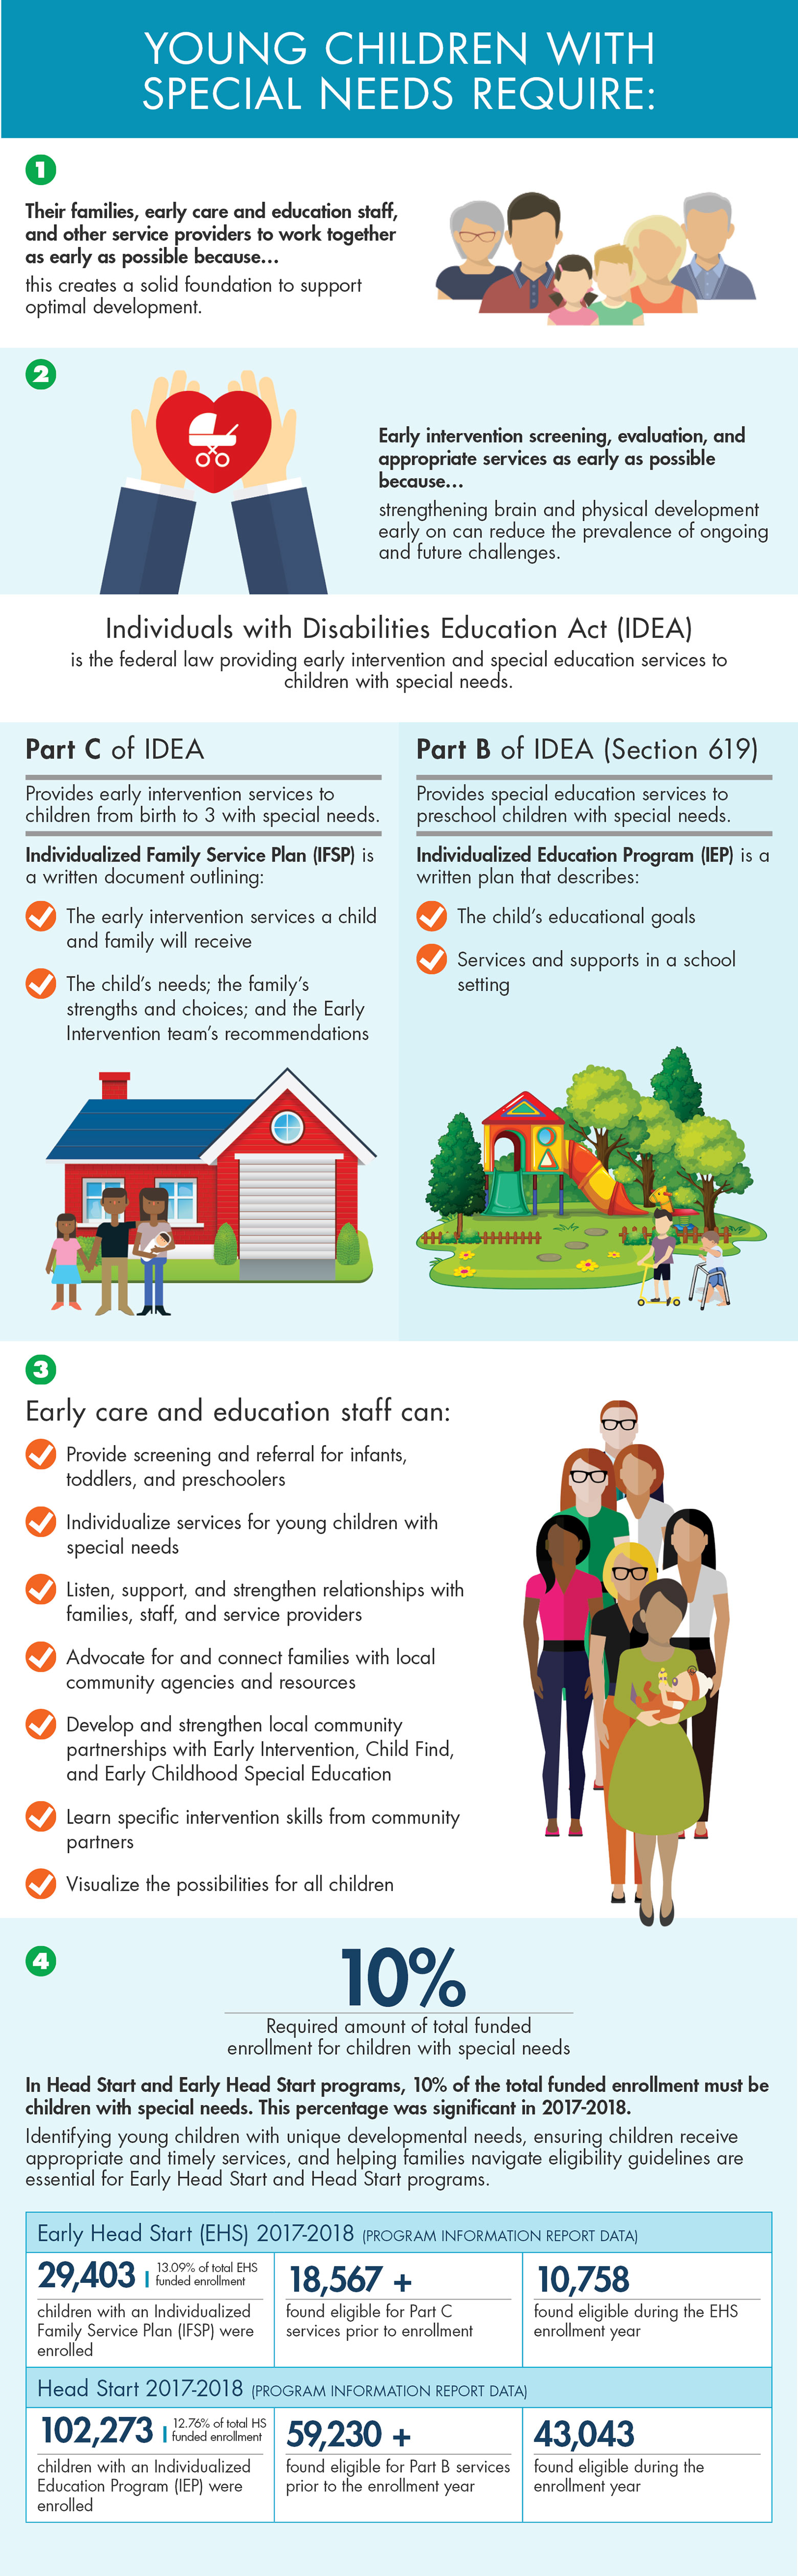 large infographic depicting the special needs issues for young children